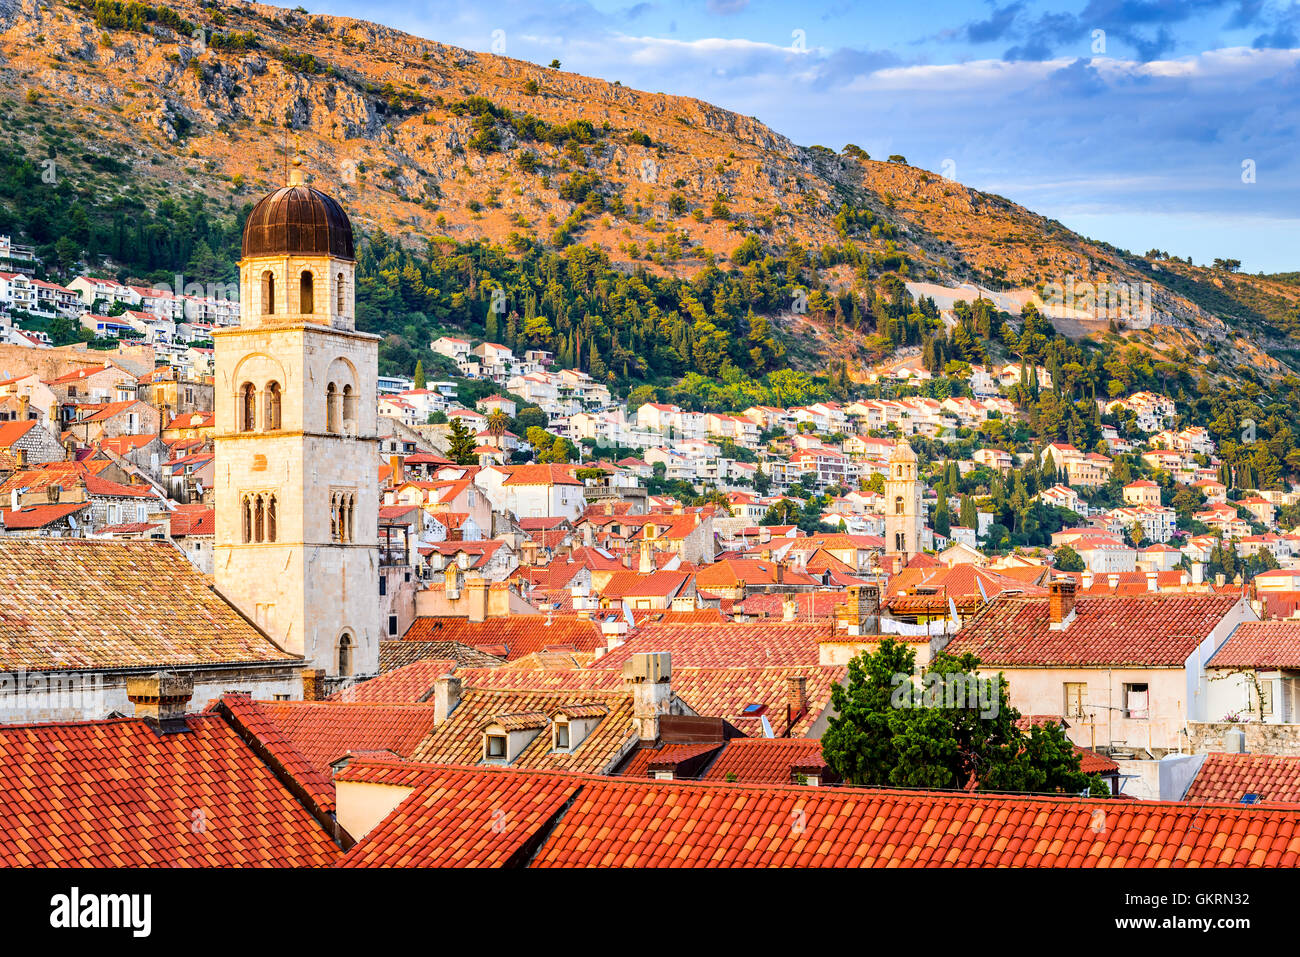 Dubrovnik, Croatia. Sunset golden light over Old Town roofs of Ragusa (Duvrovnik). - Stock Image